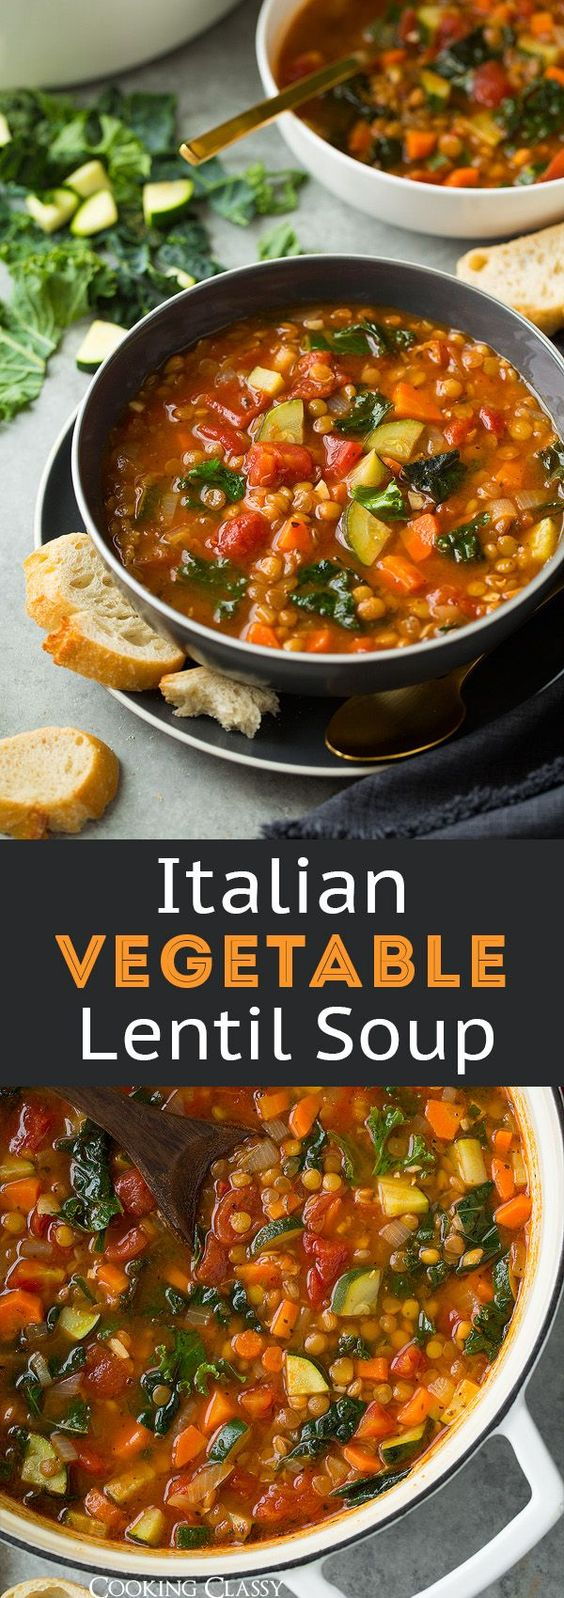 Lentil Soup (Italian Vegetable) #lentil #soup #italian #vegetable